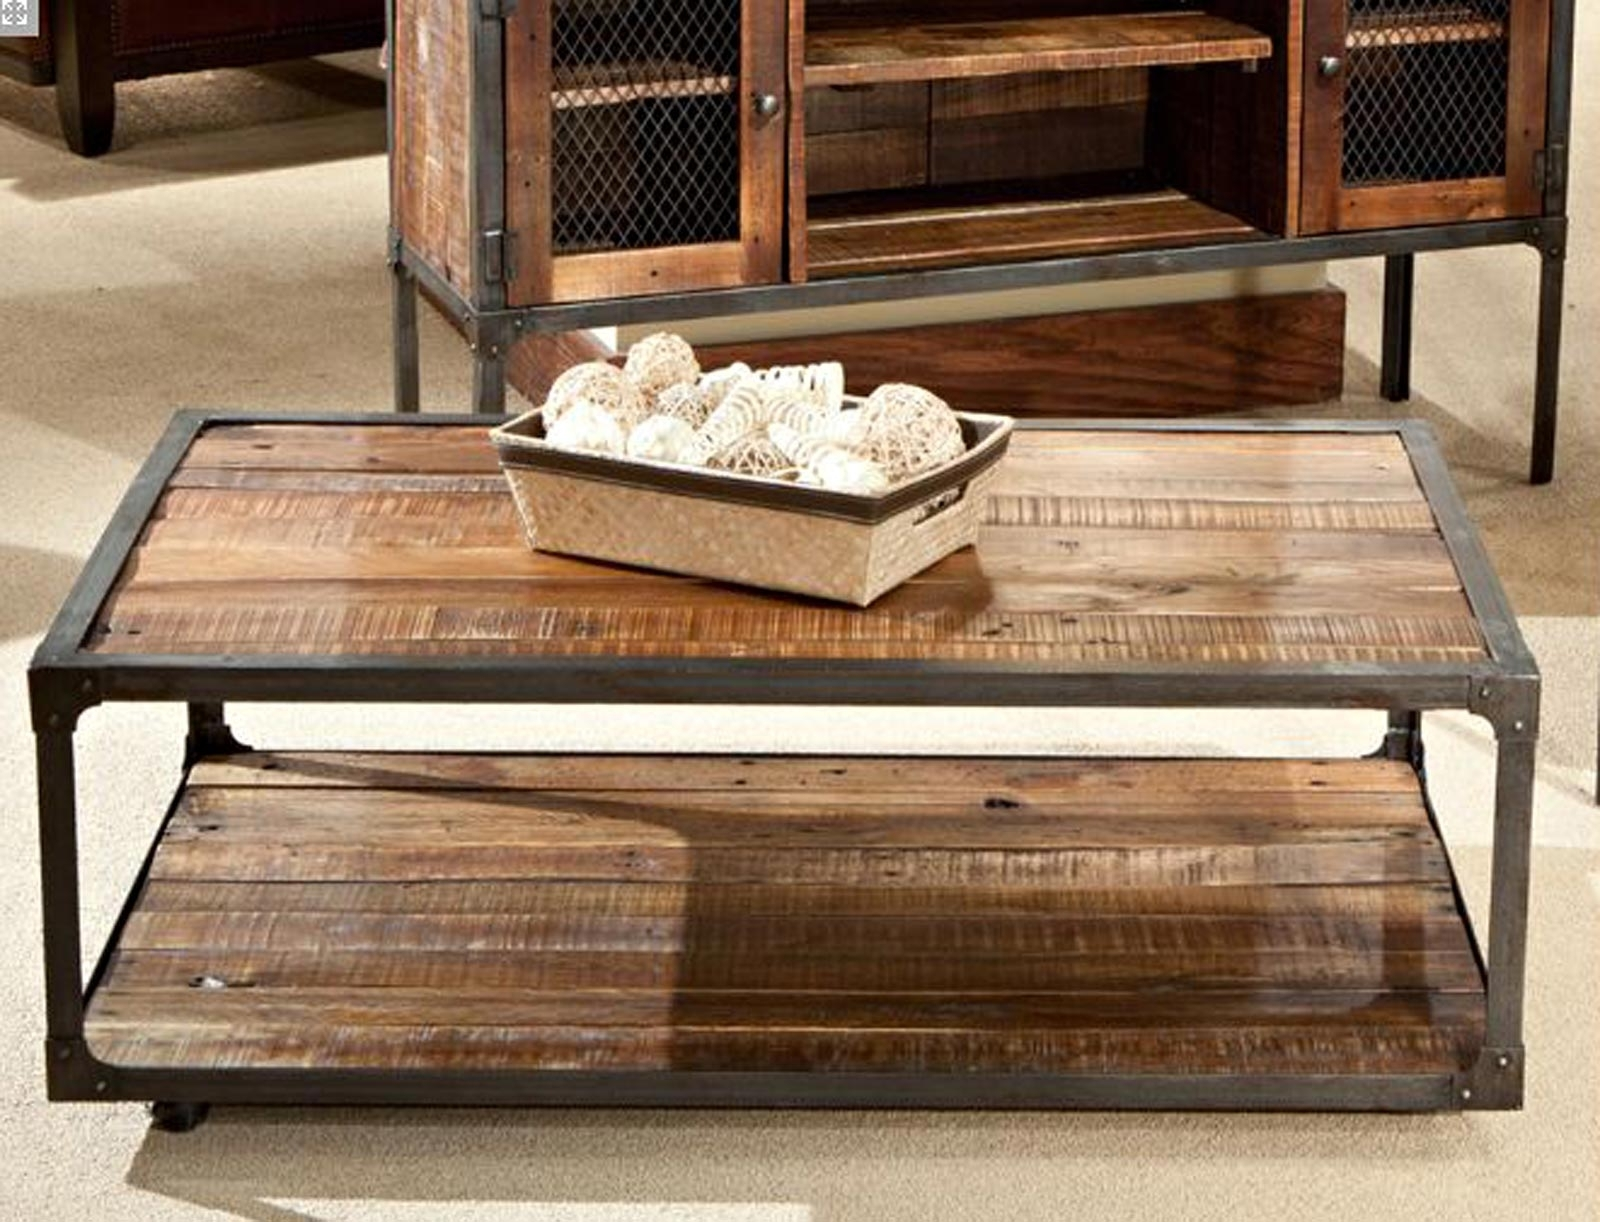 Wood Metal Coffee Table Elegant Material – Thelightlaughed With Regard To Recent Iron Wood Coffee Tables With Wheels (View 19 of 20)